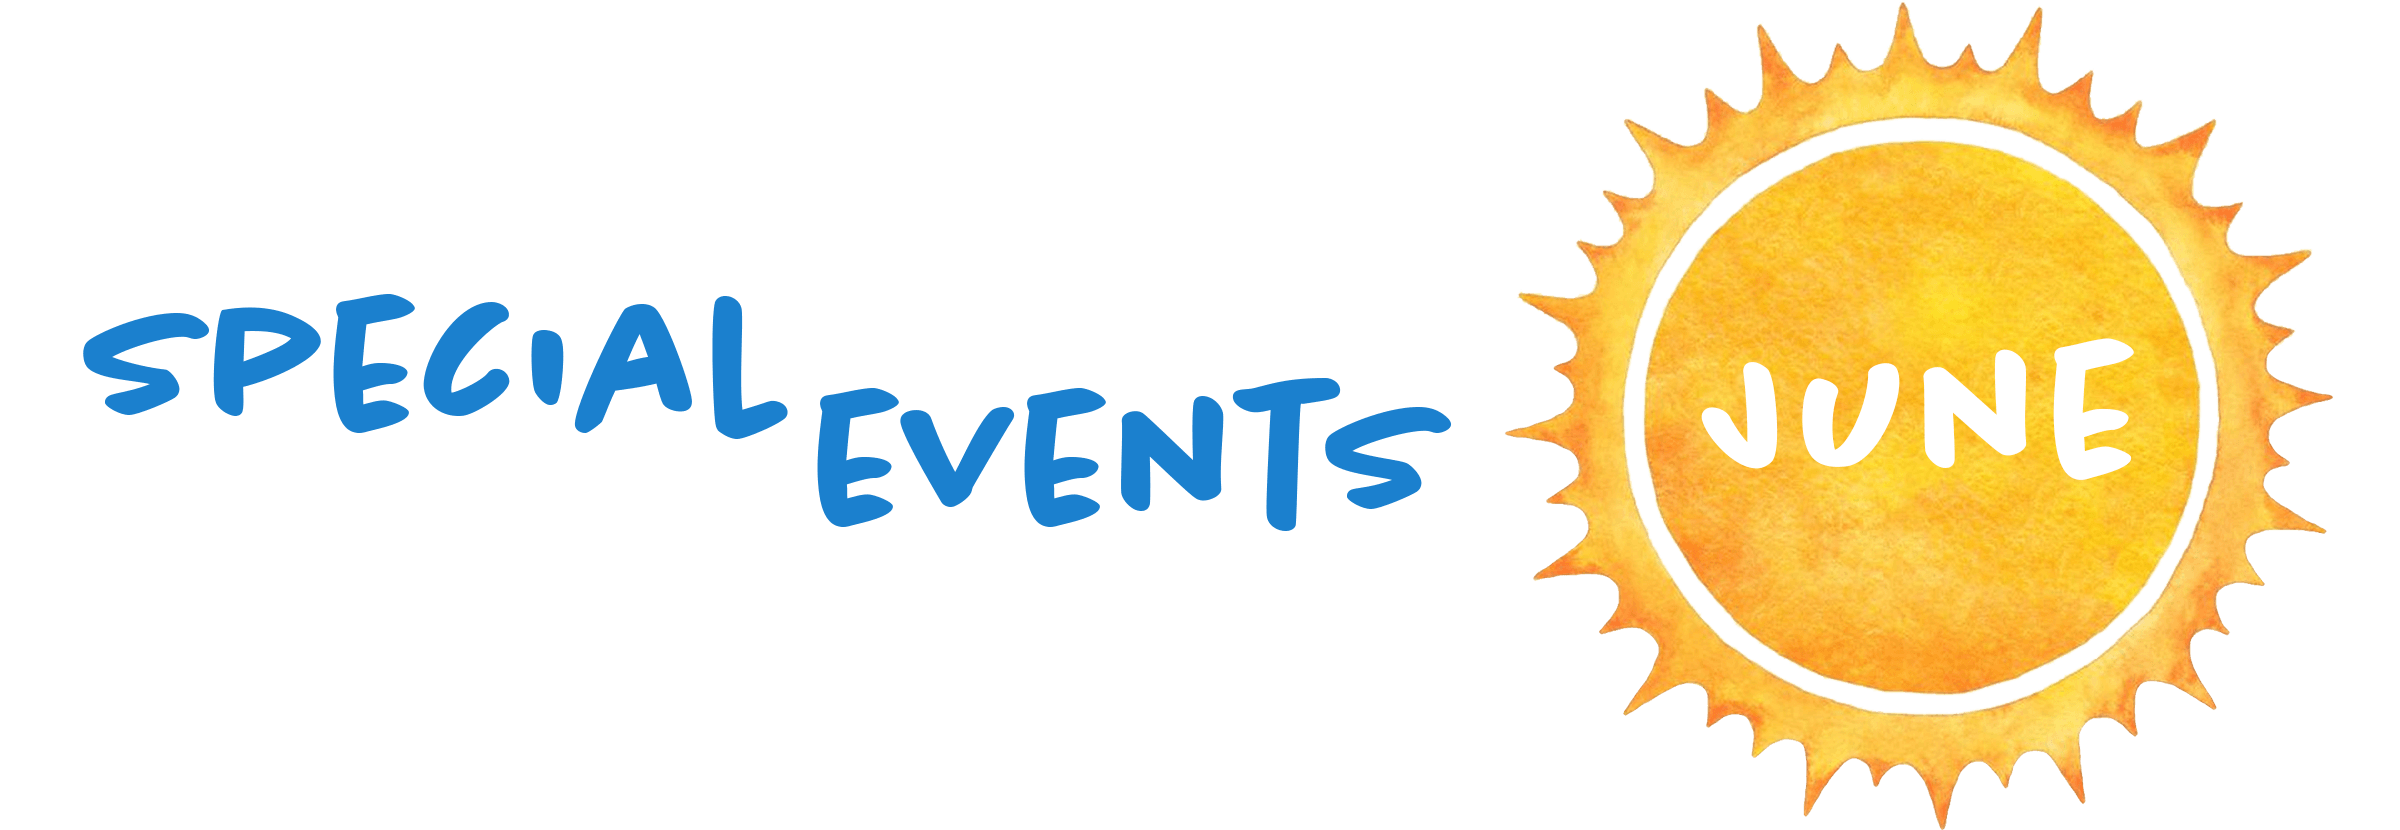 June Special Events